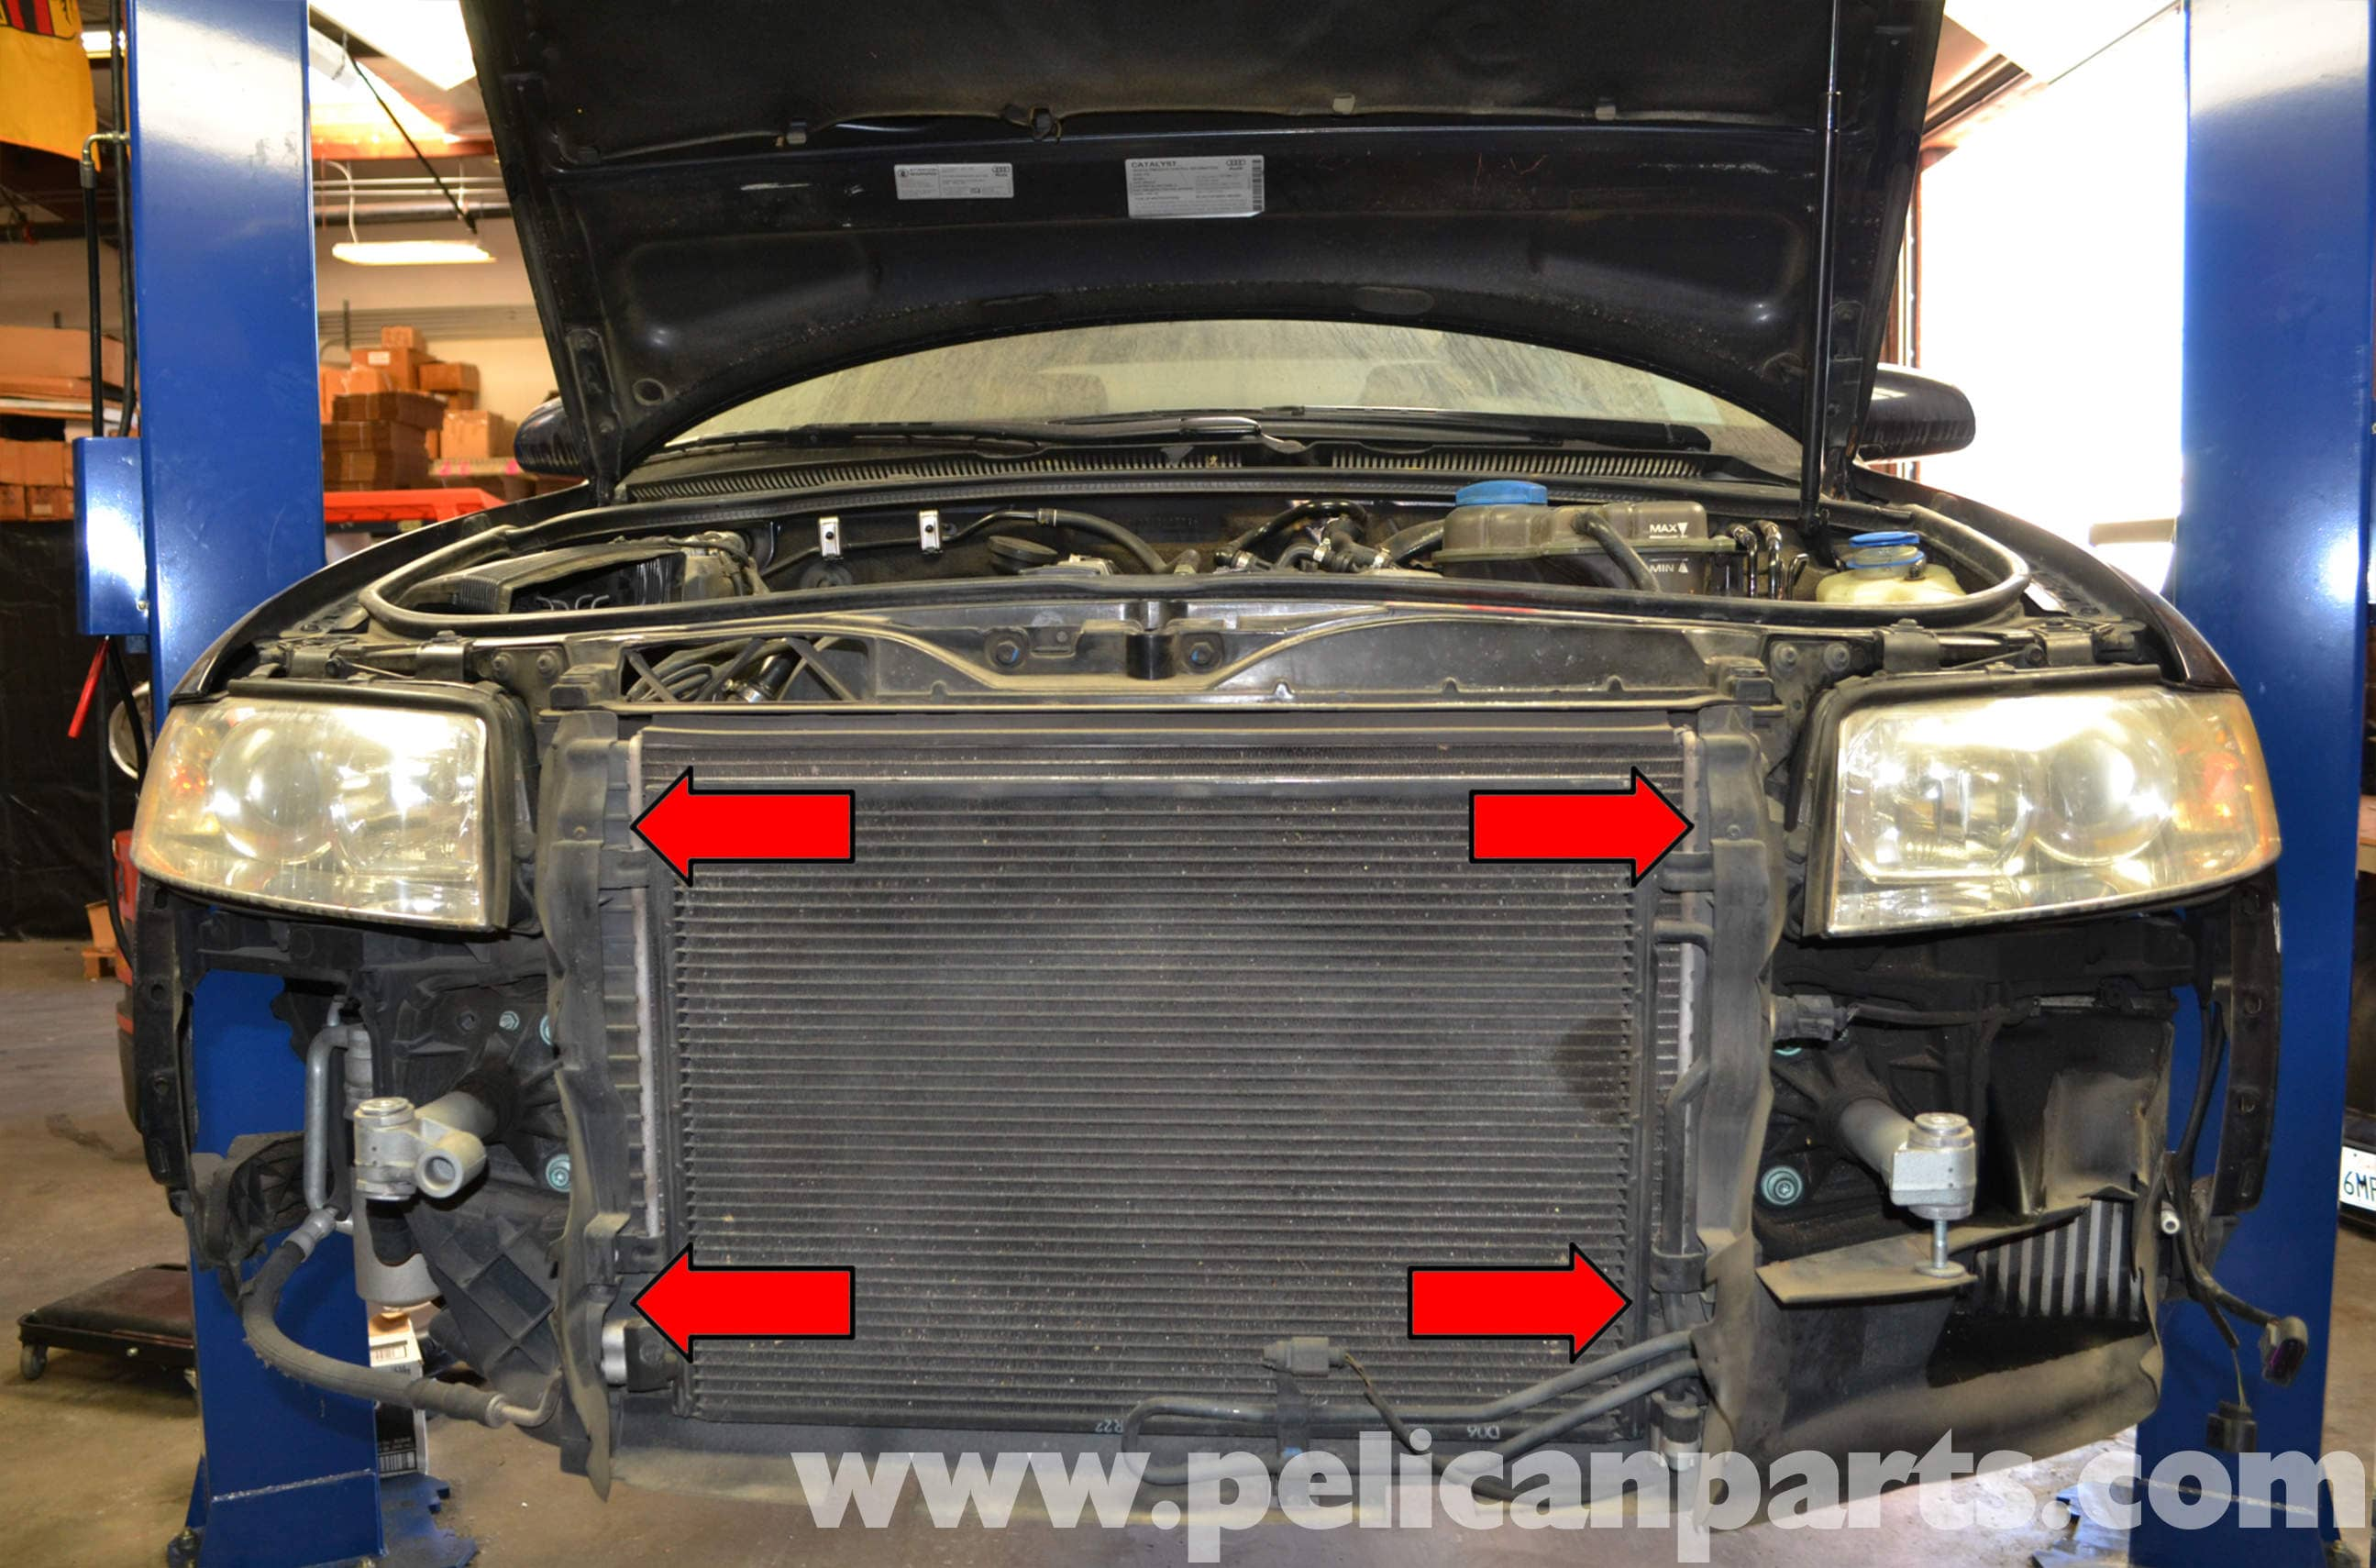 audi a4 b6 radiator replacement 1 8t 2002 2008 pelican parts diy rh pelicanparts com Audi A4 Turbo 2015 Audi A4